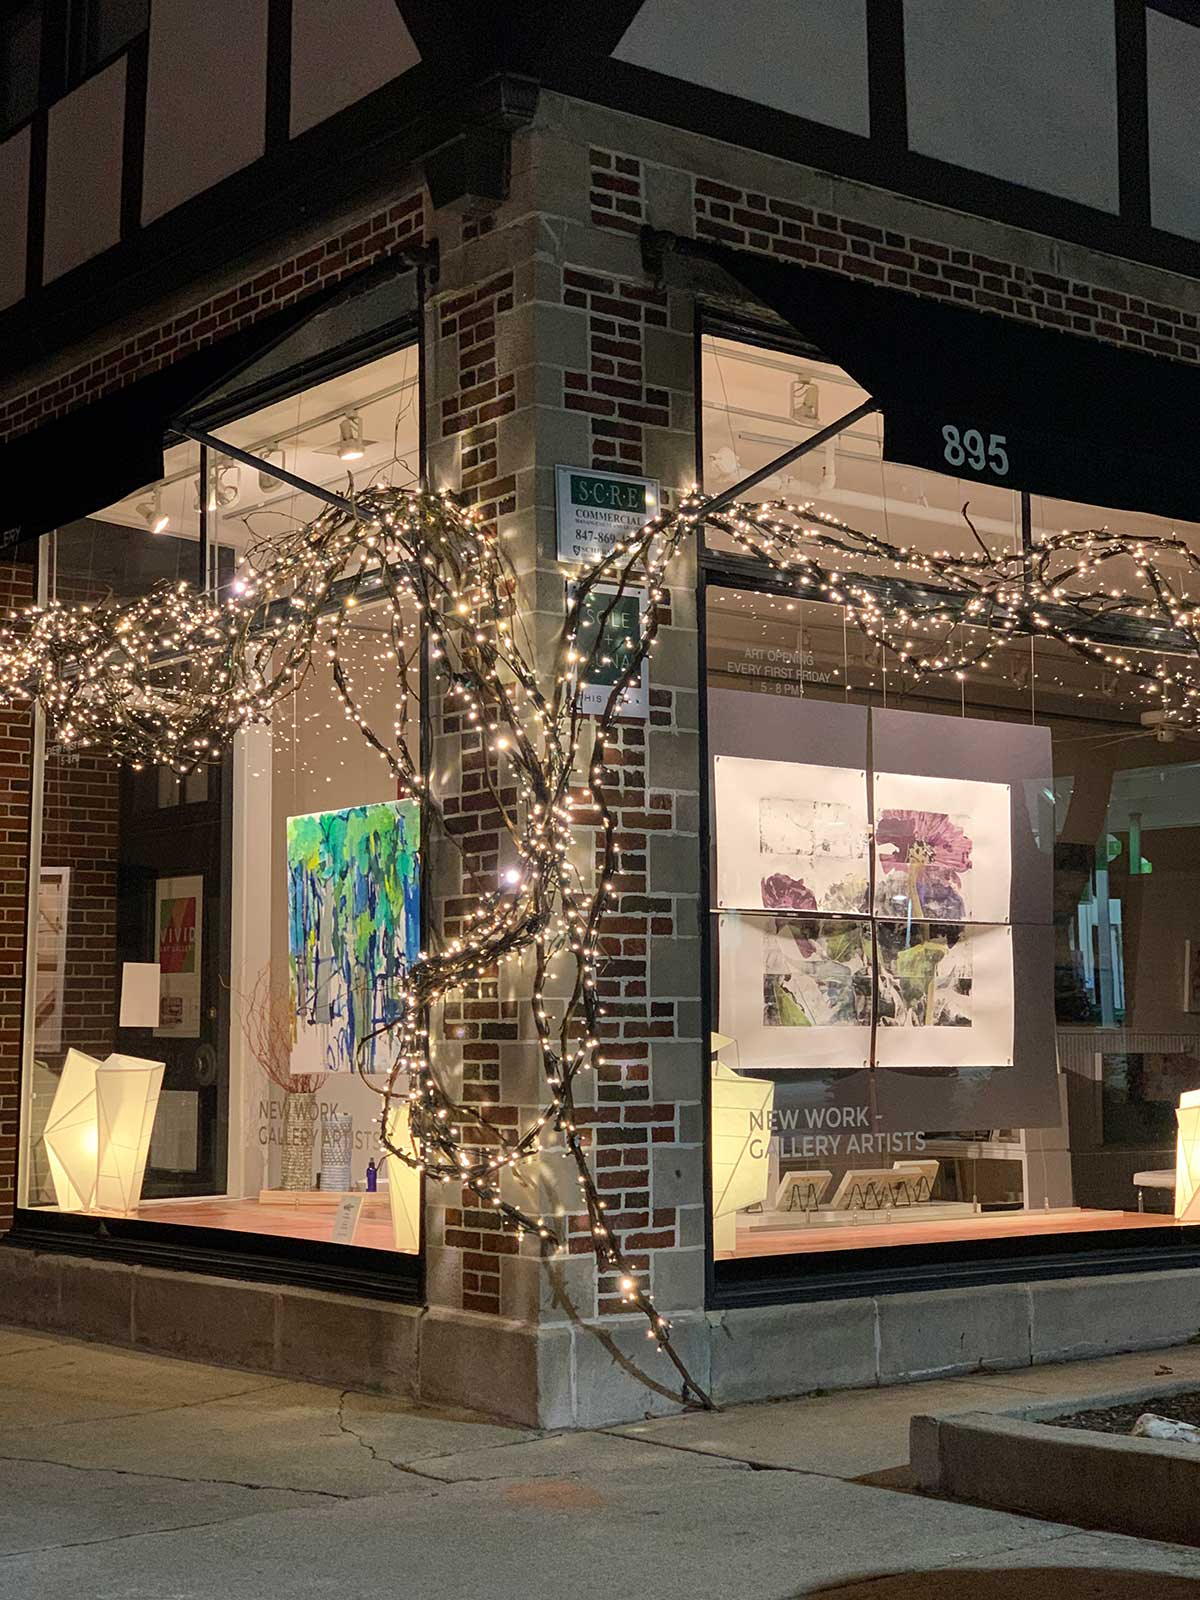 Vivid Gallery Window with julie cowan art in January 2021